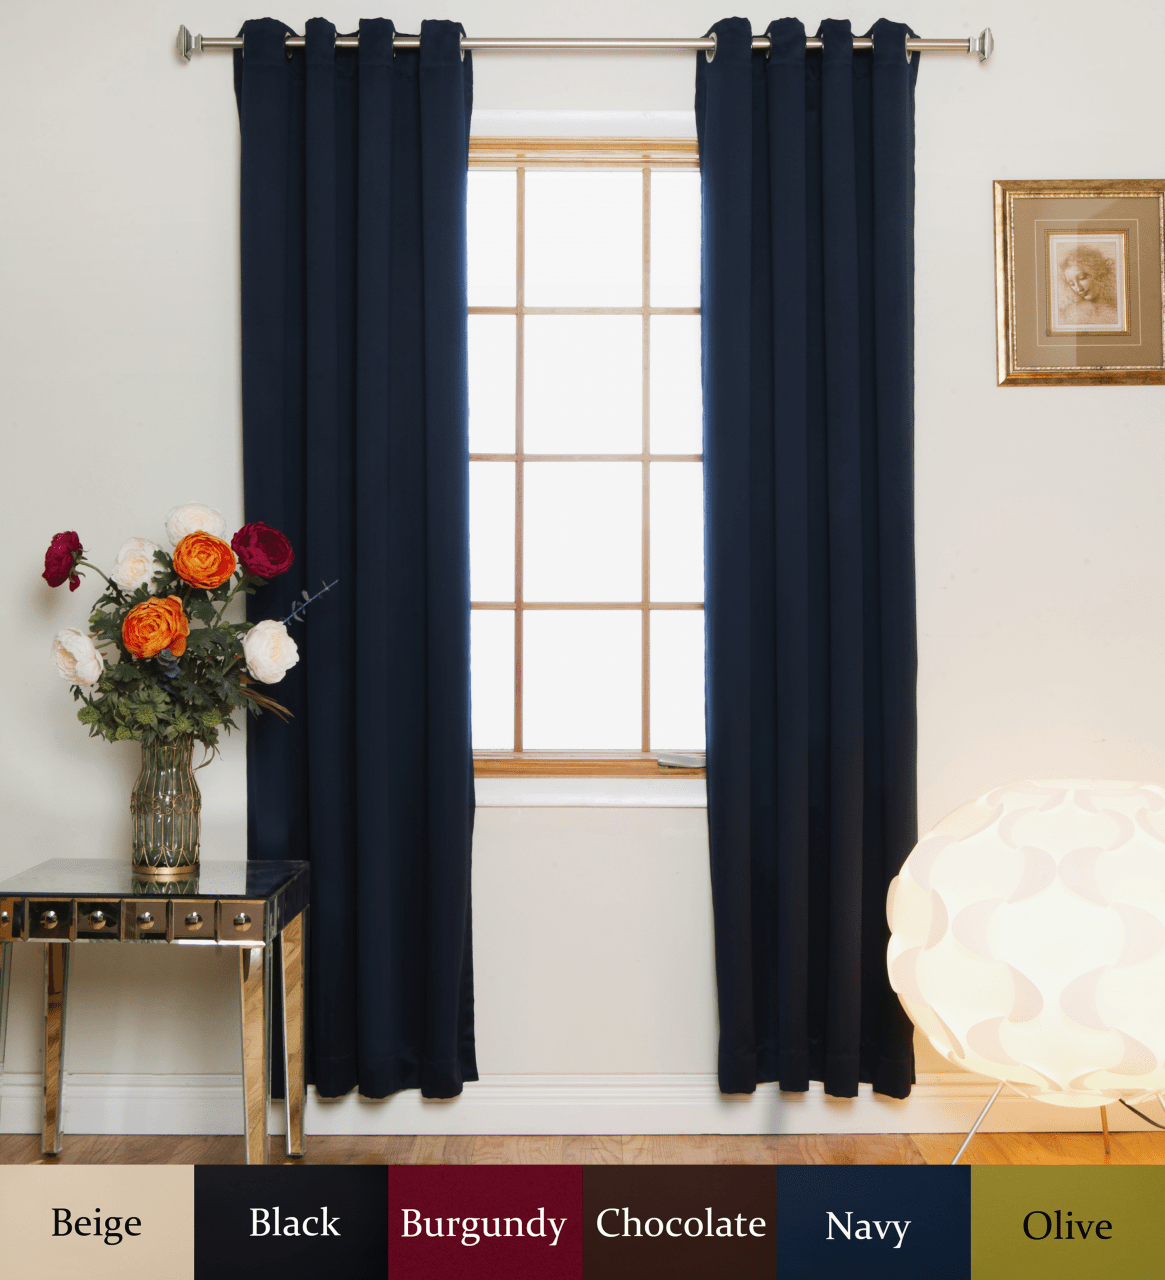 94 Inch Blackout Curtains Nickel Grommet Top Blackout Curtain 108 Inch Length